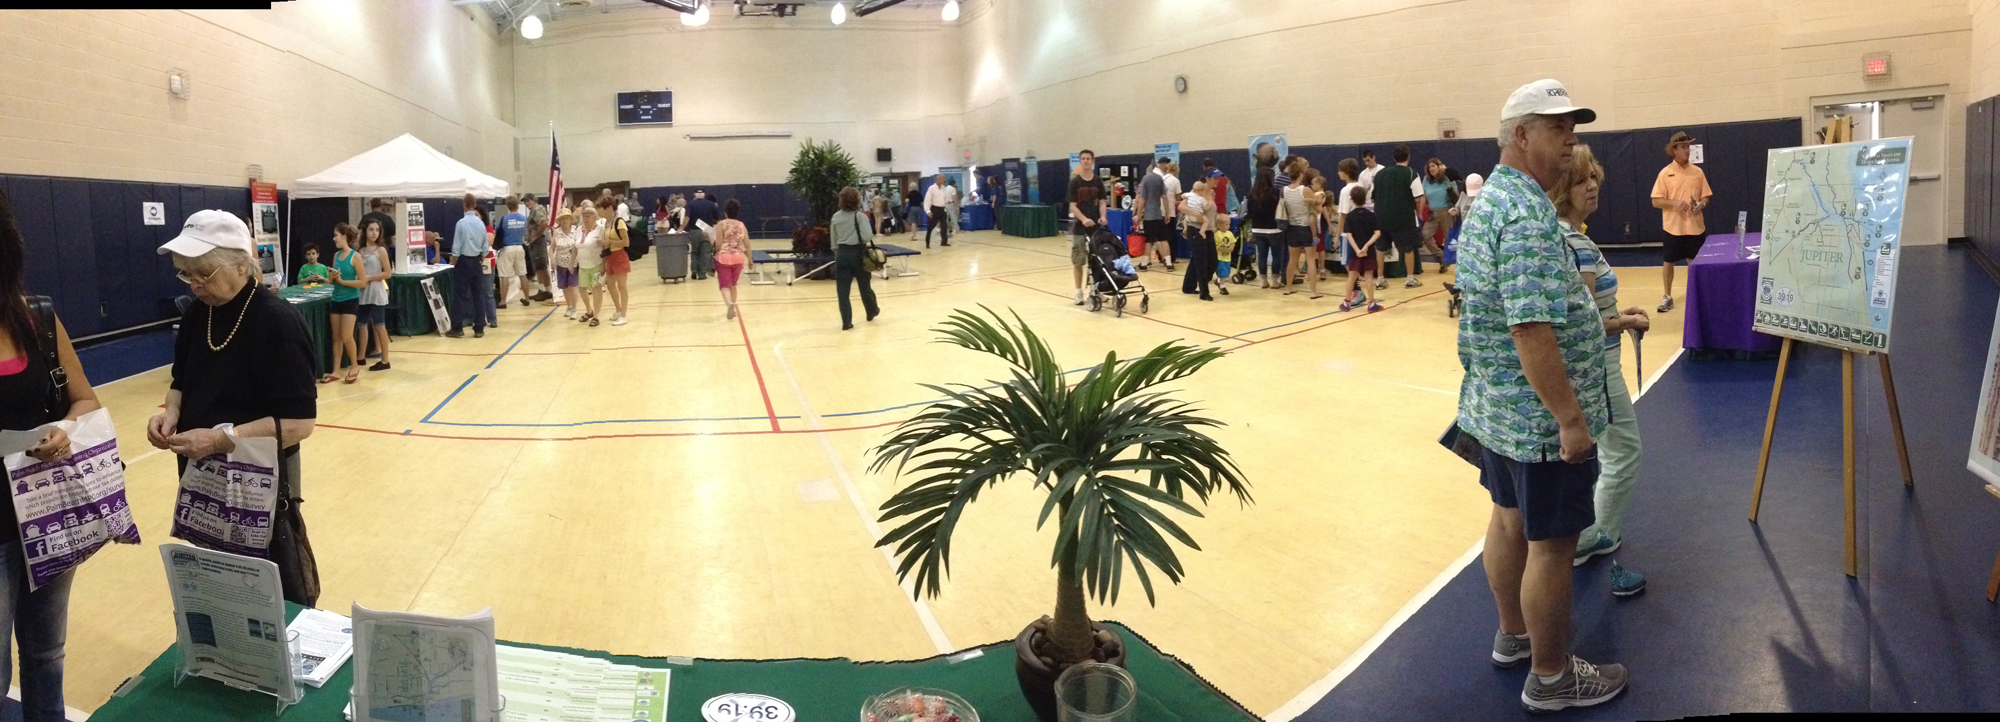 ecot expo panoramic